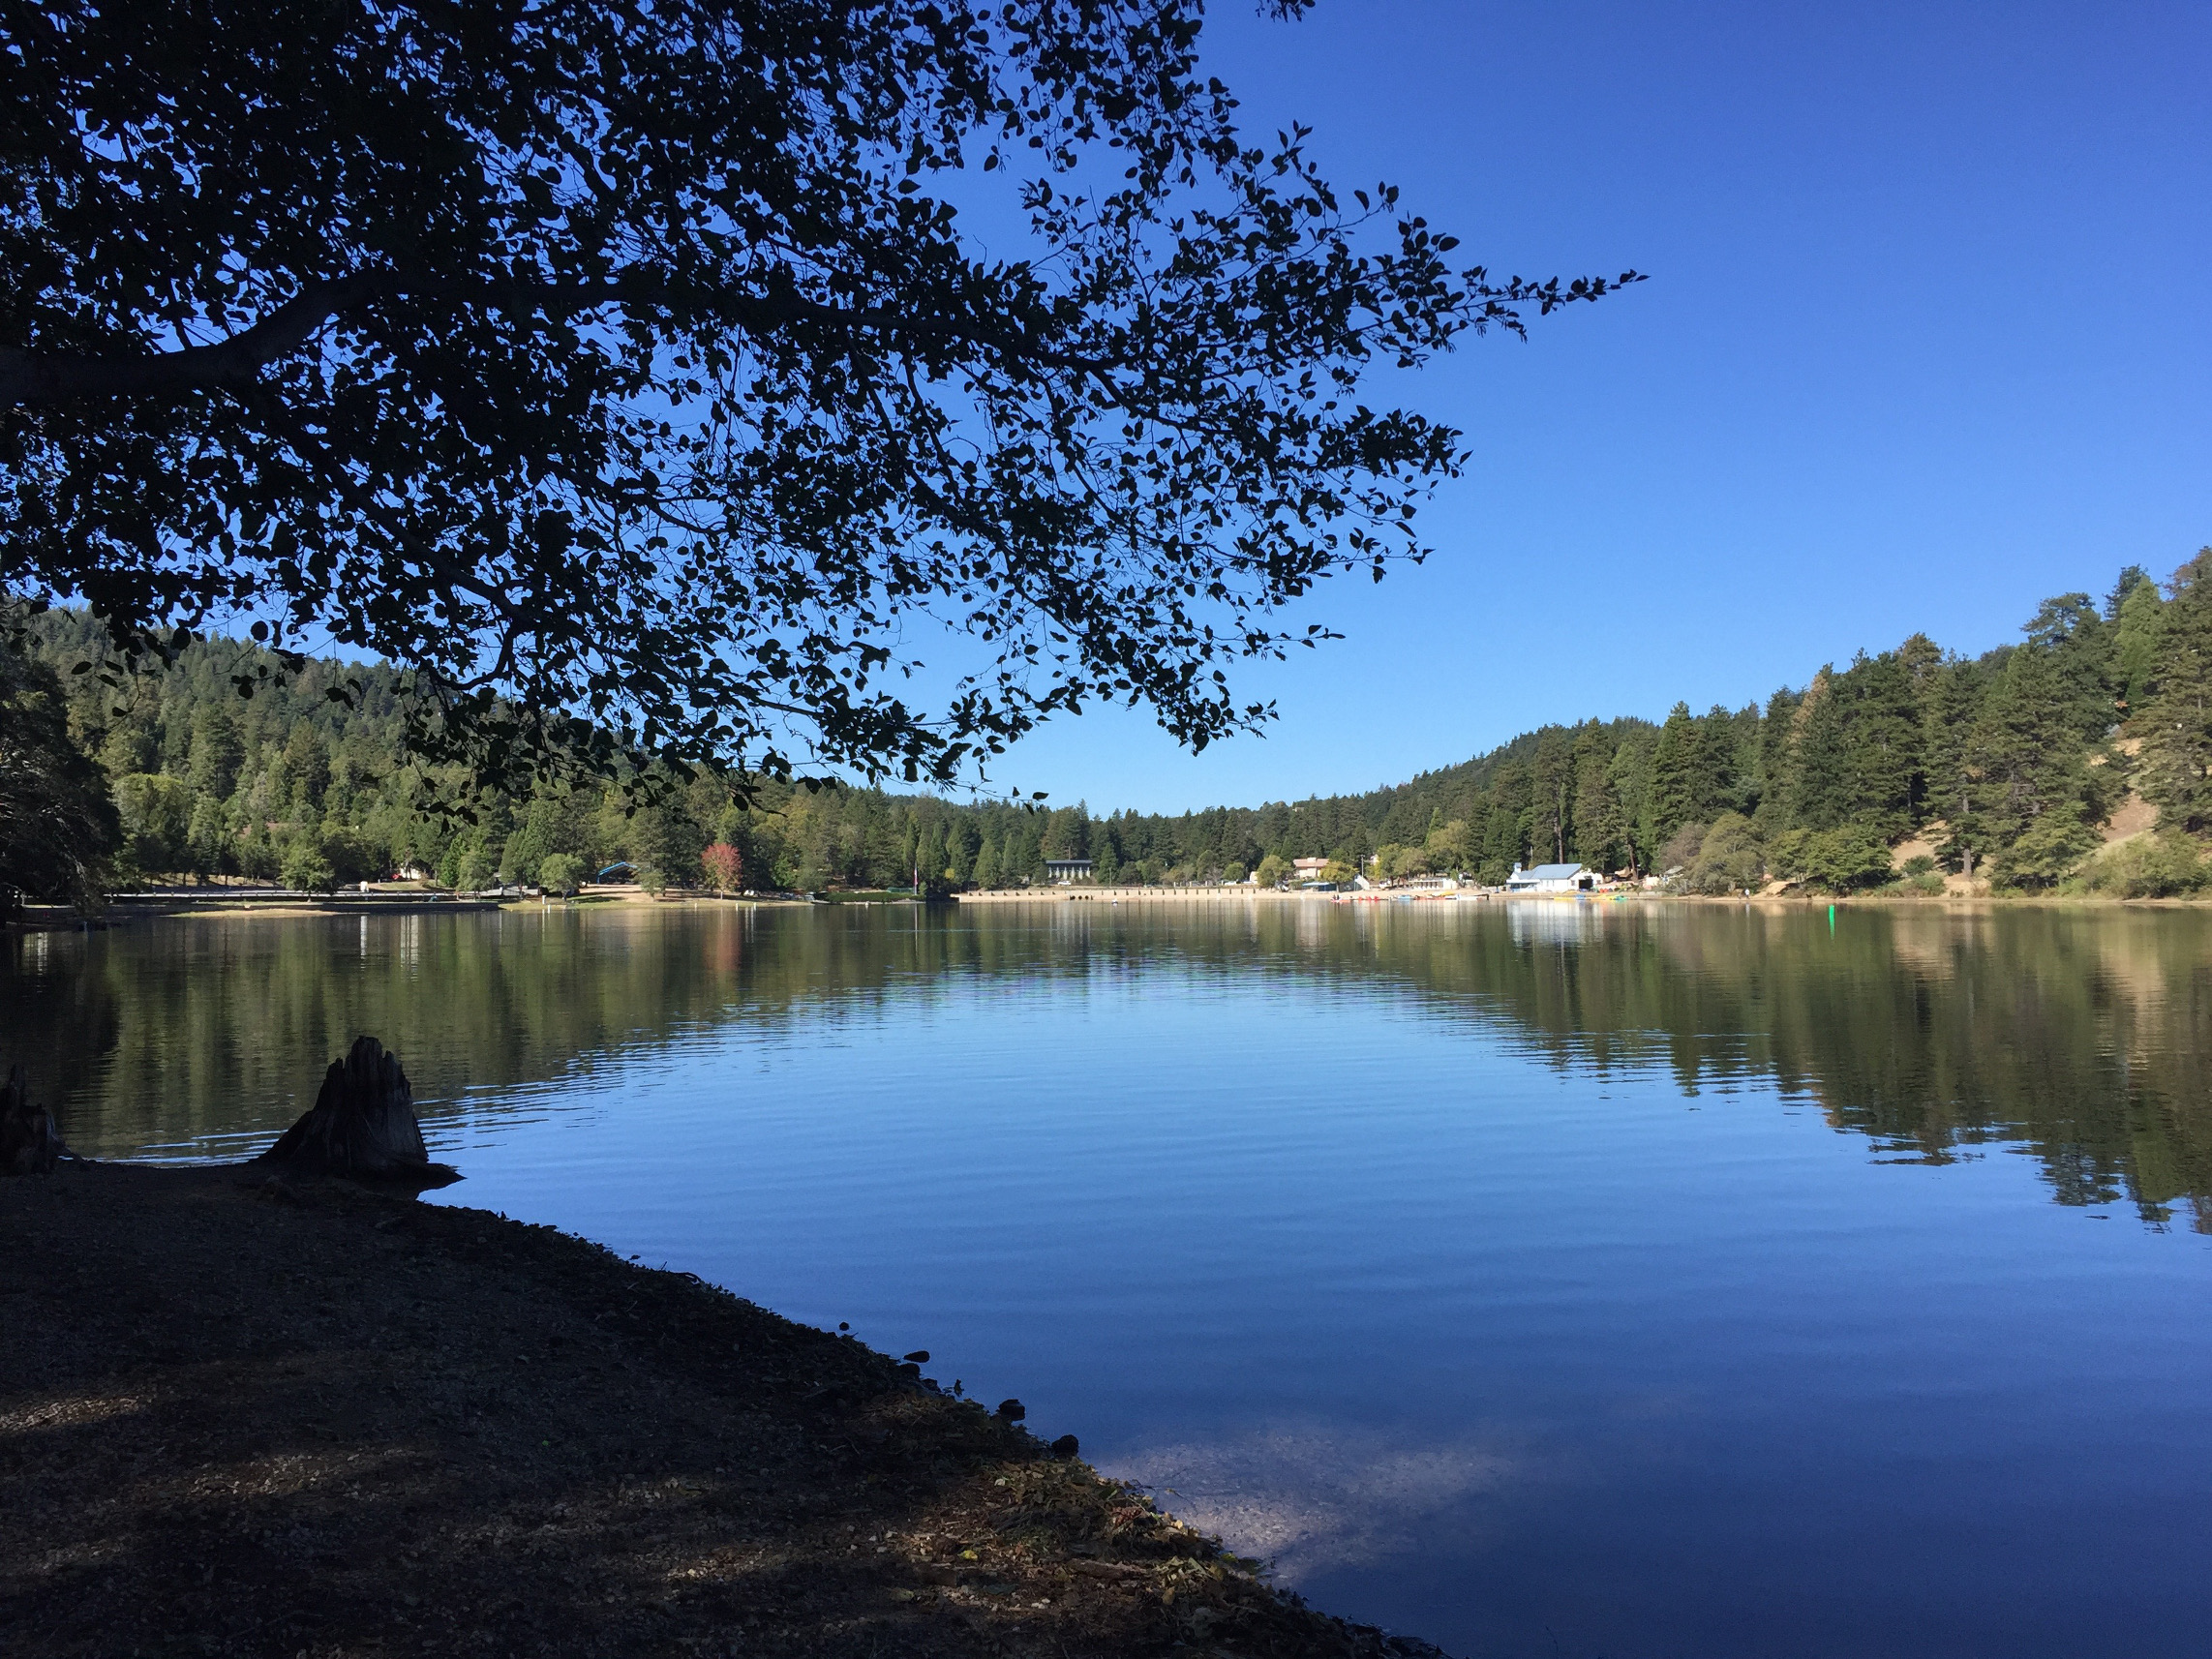 Crestline, California, Mountain, Travel, Adventure, Lake Gregory